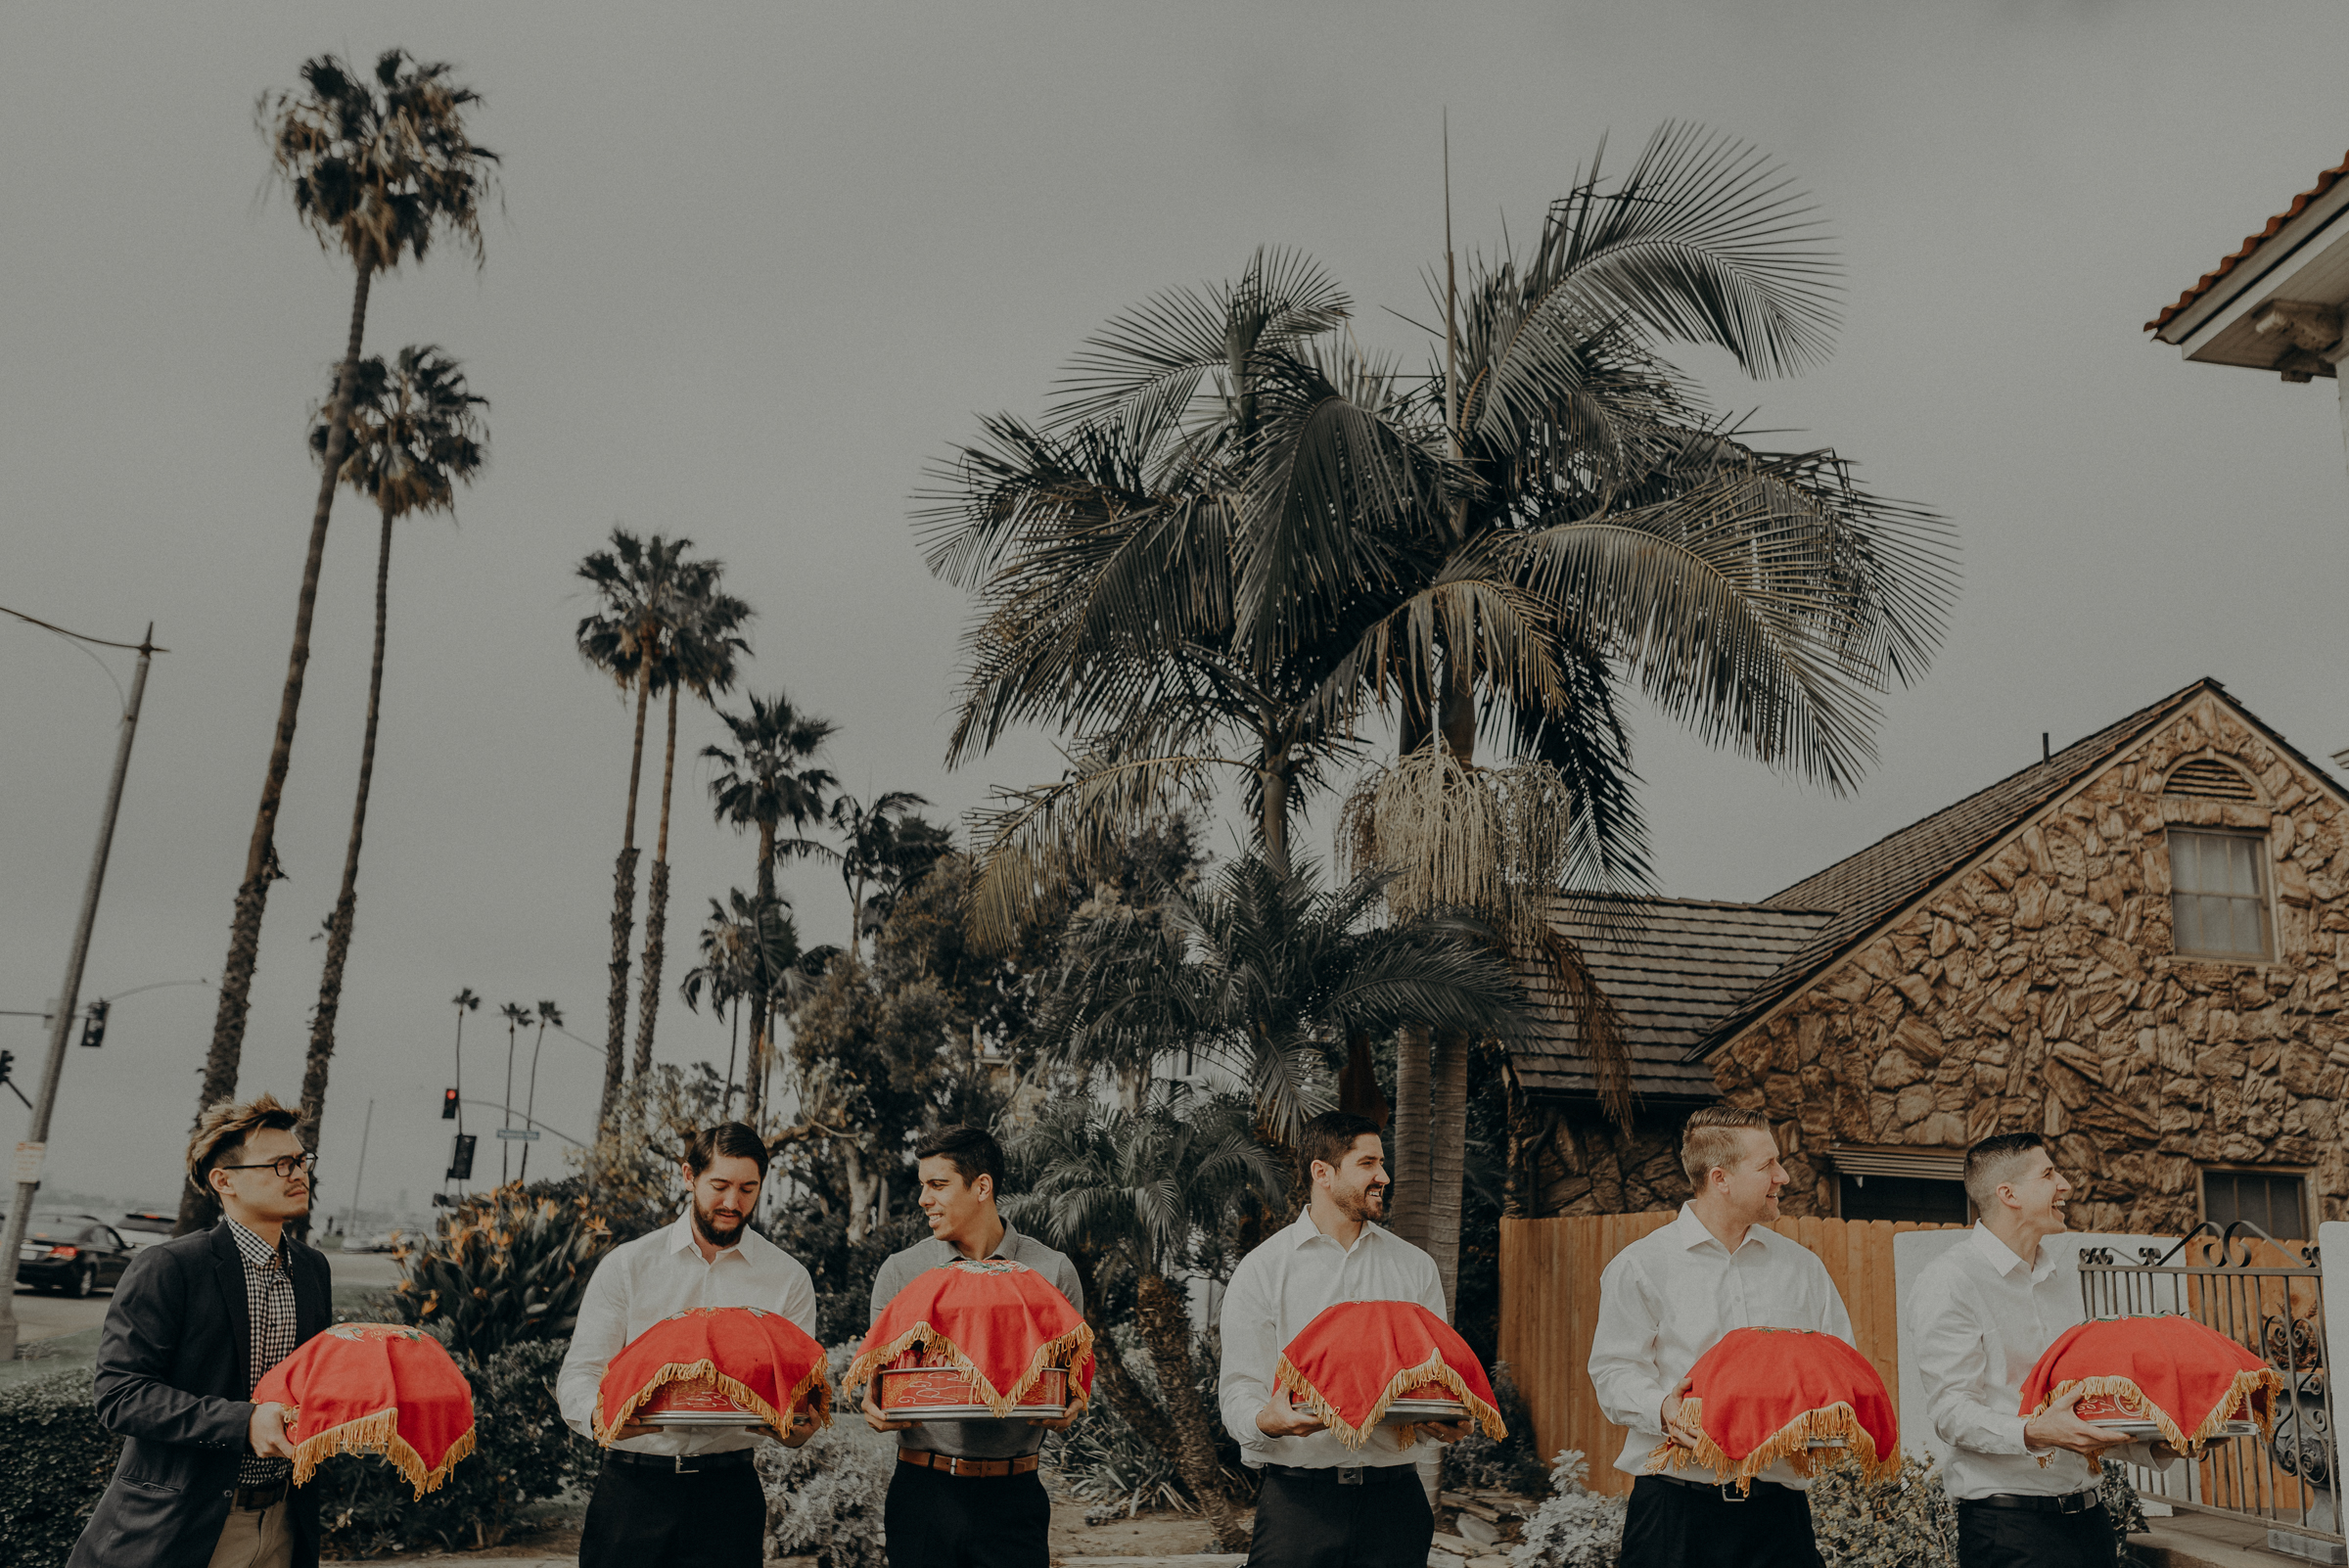 Los Angeles Wedding Photographer - IsaiahAndTaylor.com - The Ebell of Long Beach Wedding - Traditional Vietnamese tea ceremony-044.jpg